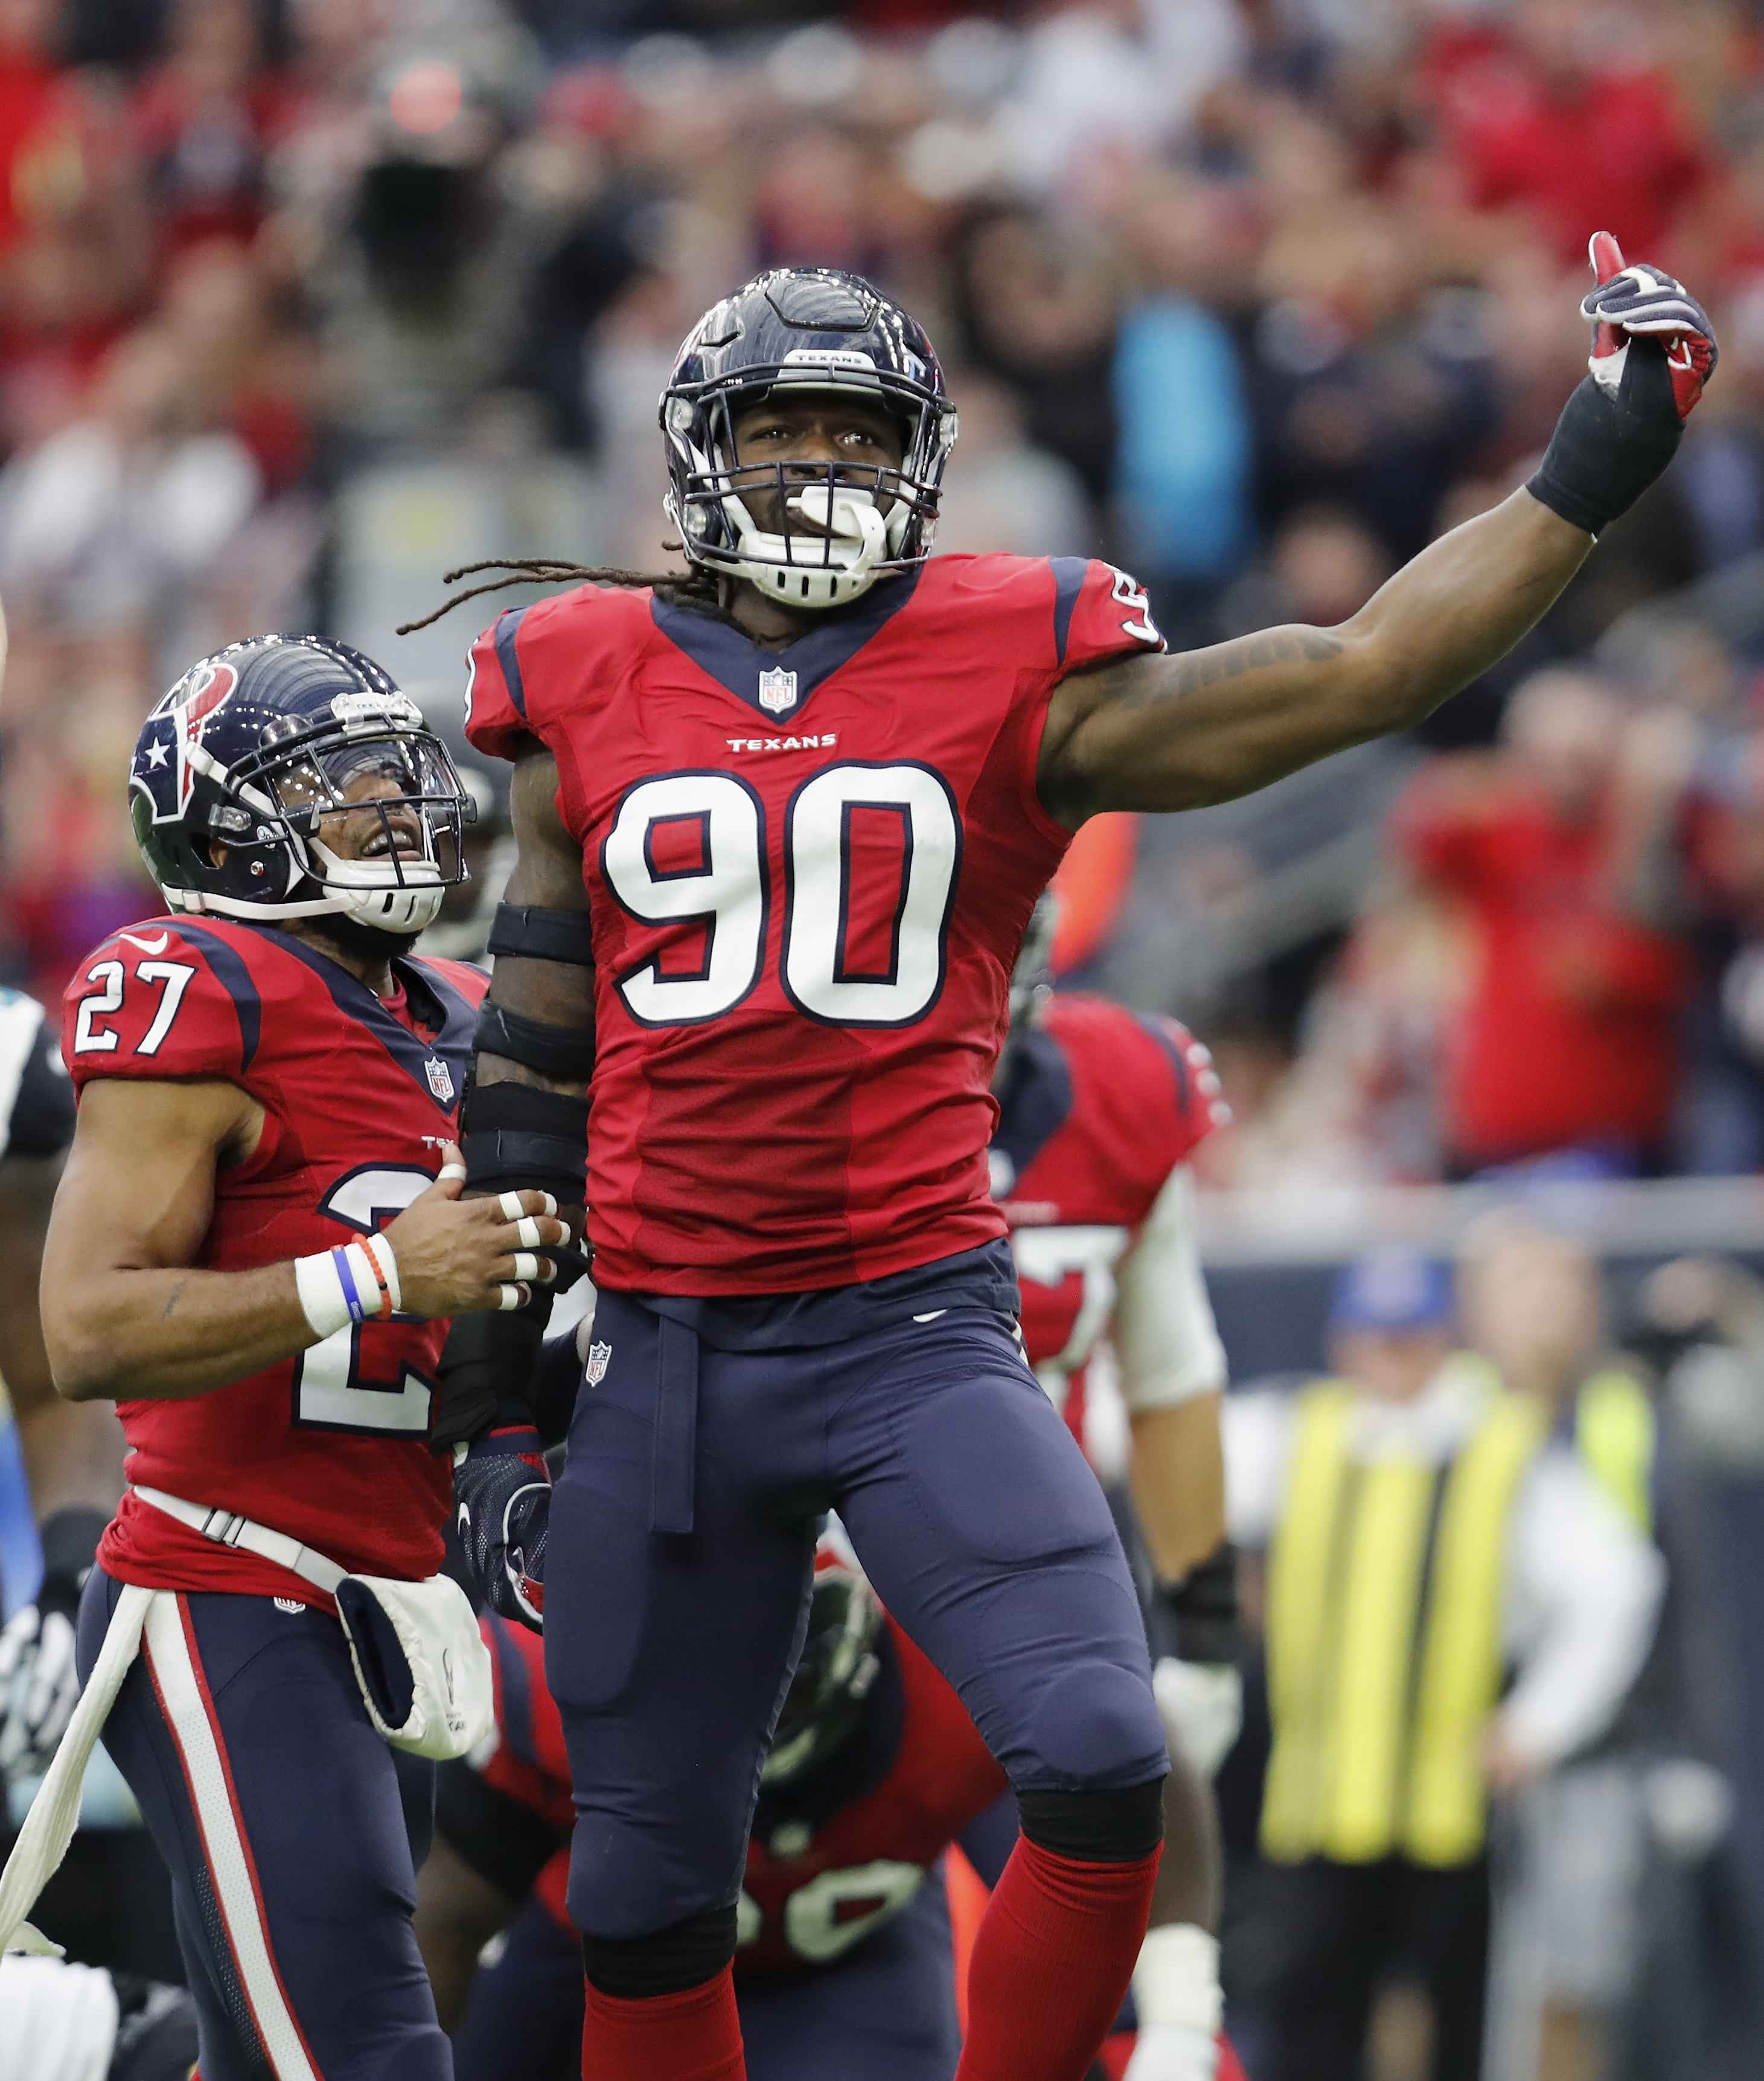 fc7bc06c331 Jadeveon Clowney will be one step closer to greatness in 2017. That s scary.